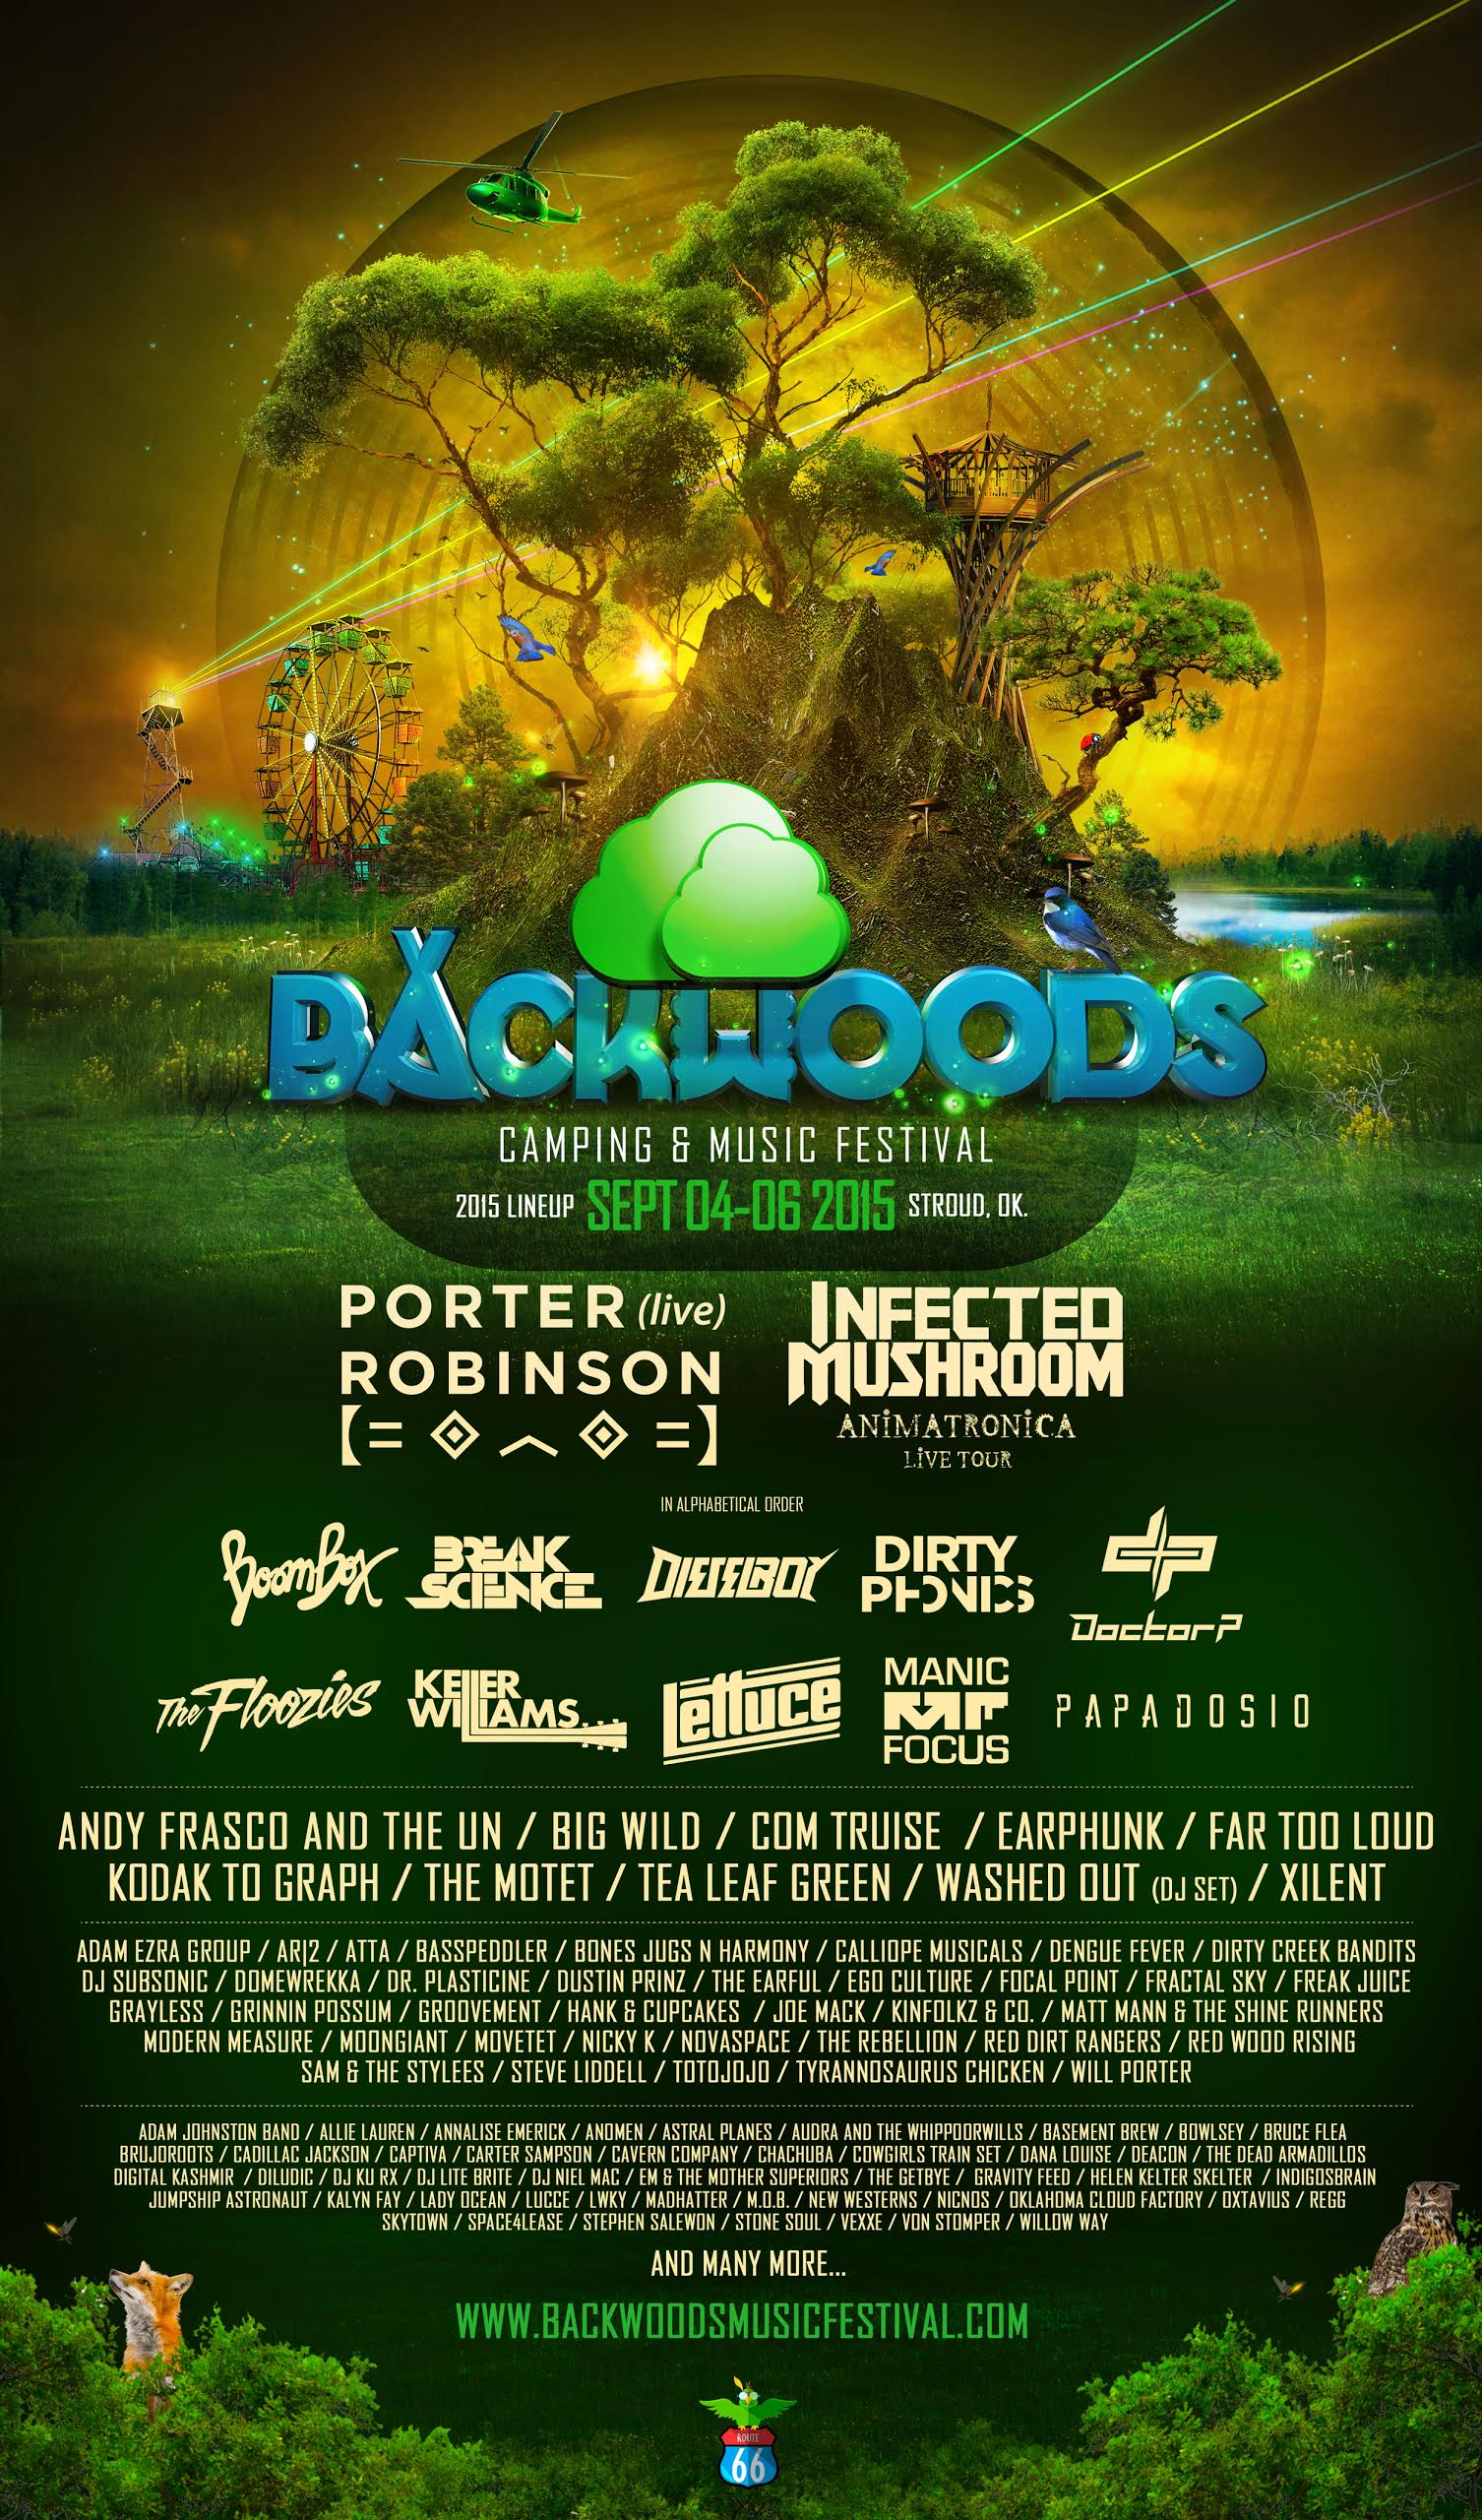 Infected Mushroom Songs Delightful porter robinson, infected mushroom headline backwoods festival in ok